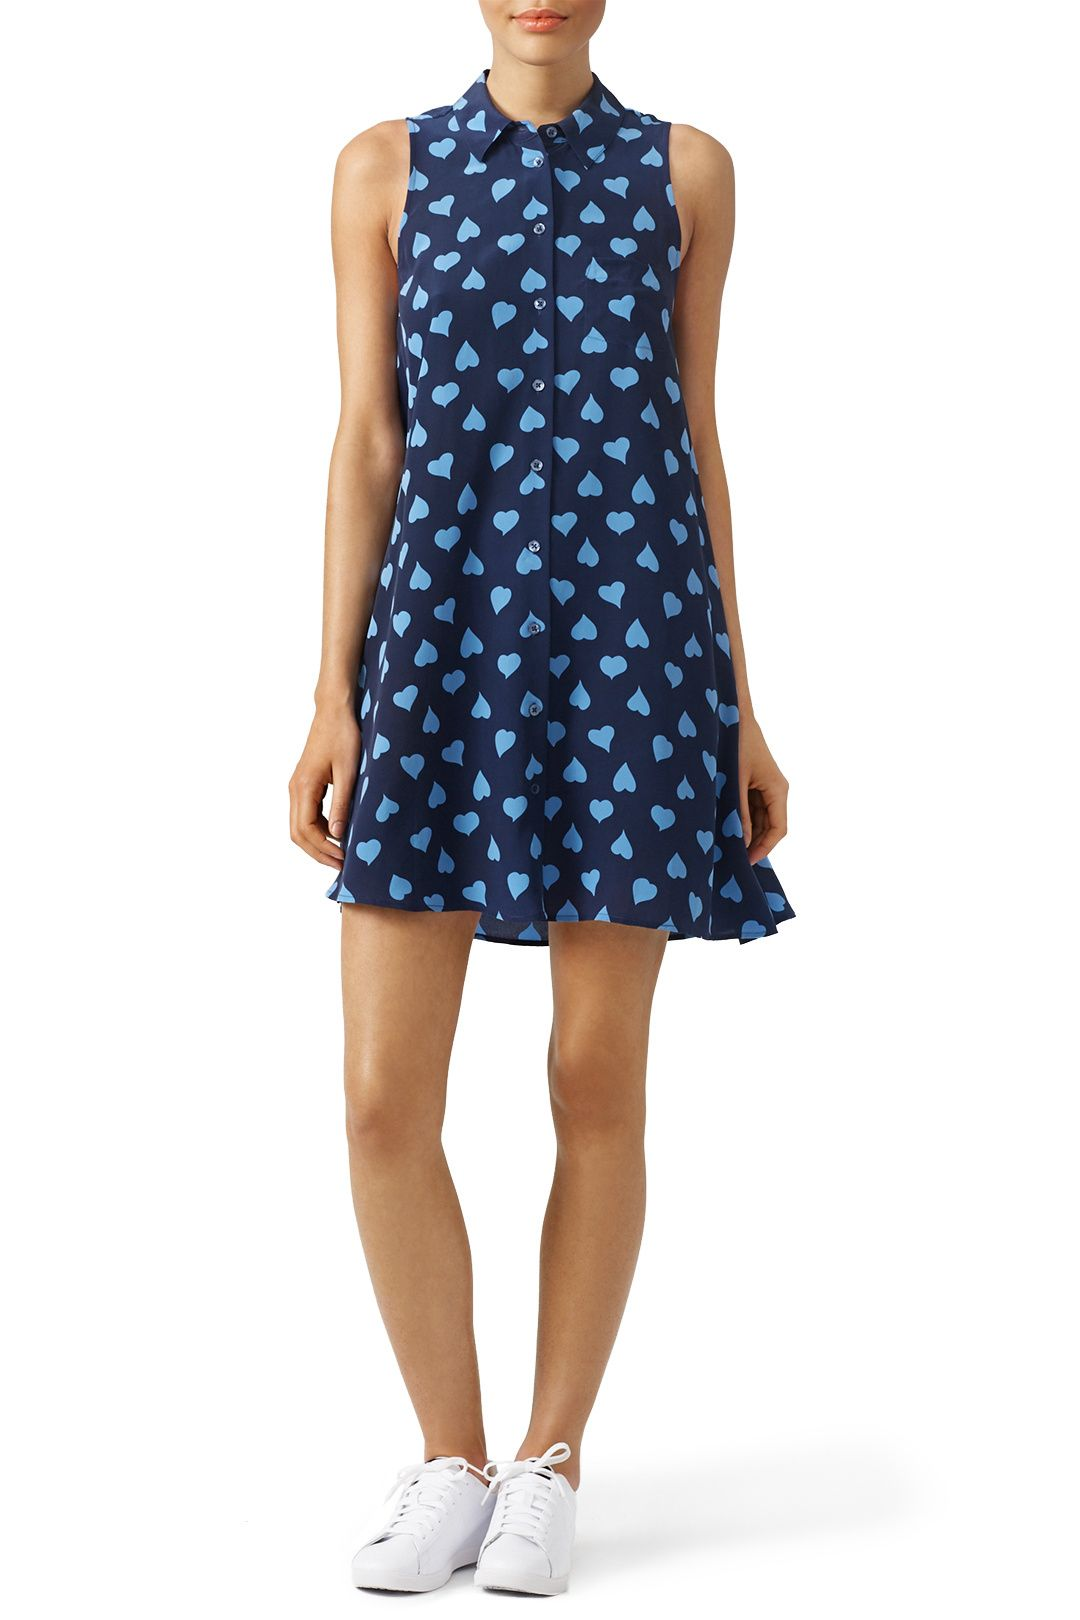 H&m green lace dress  Blue Heart Shirt Dress  th Clothing and Designers